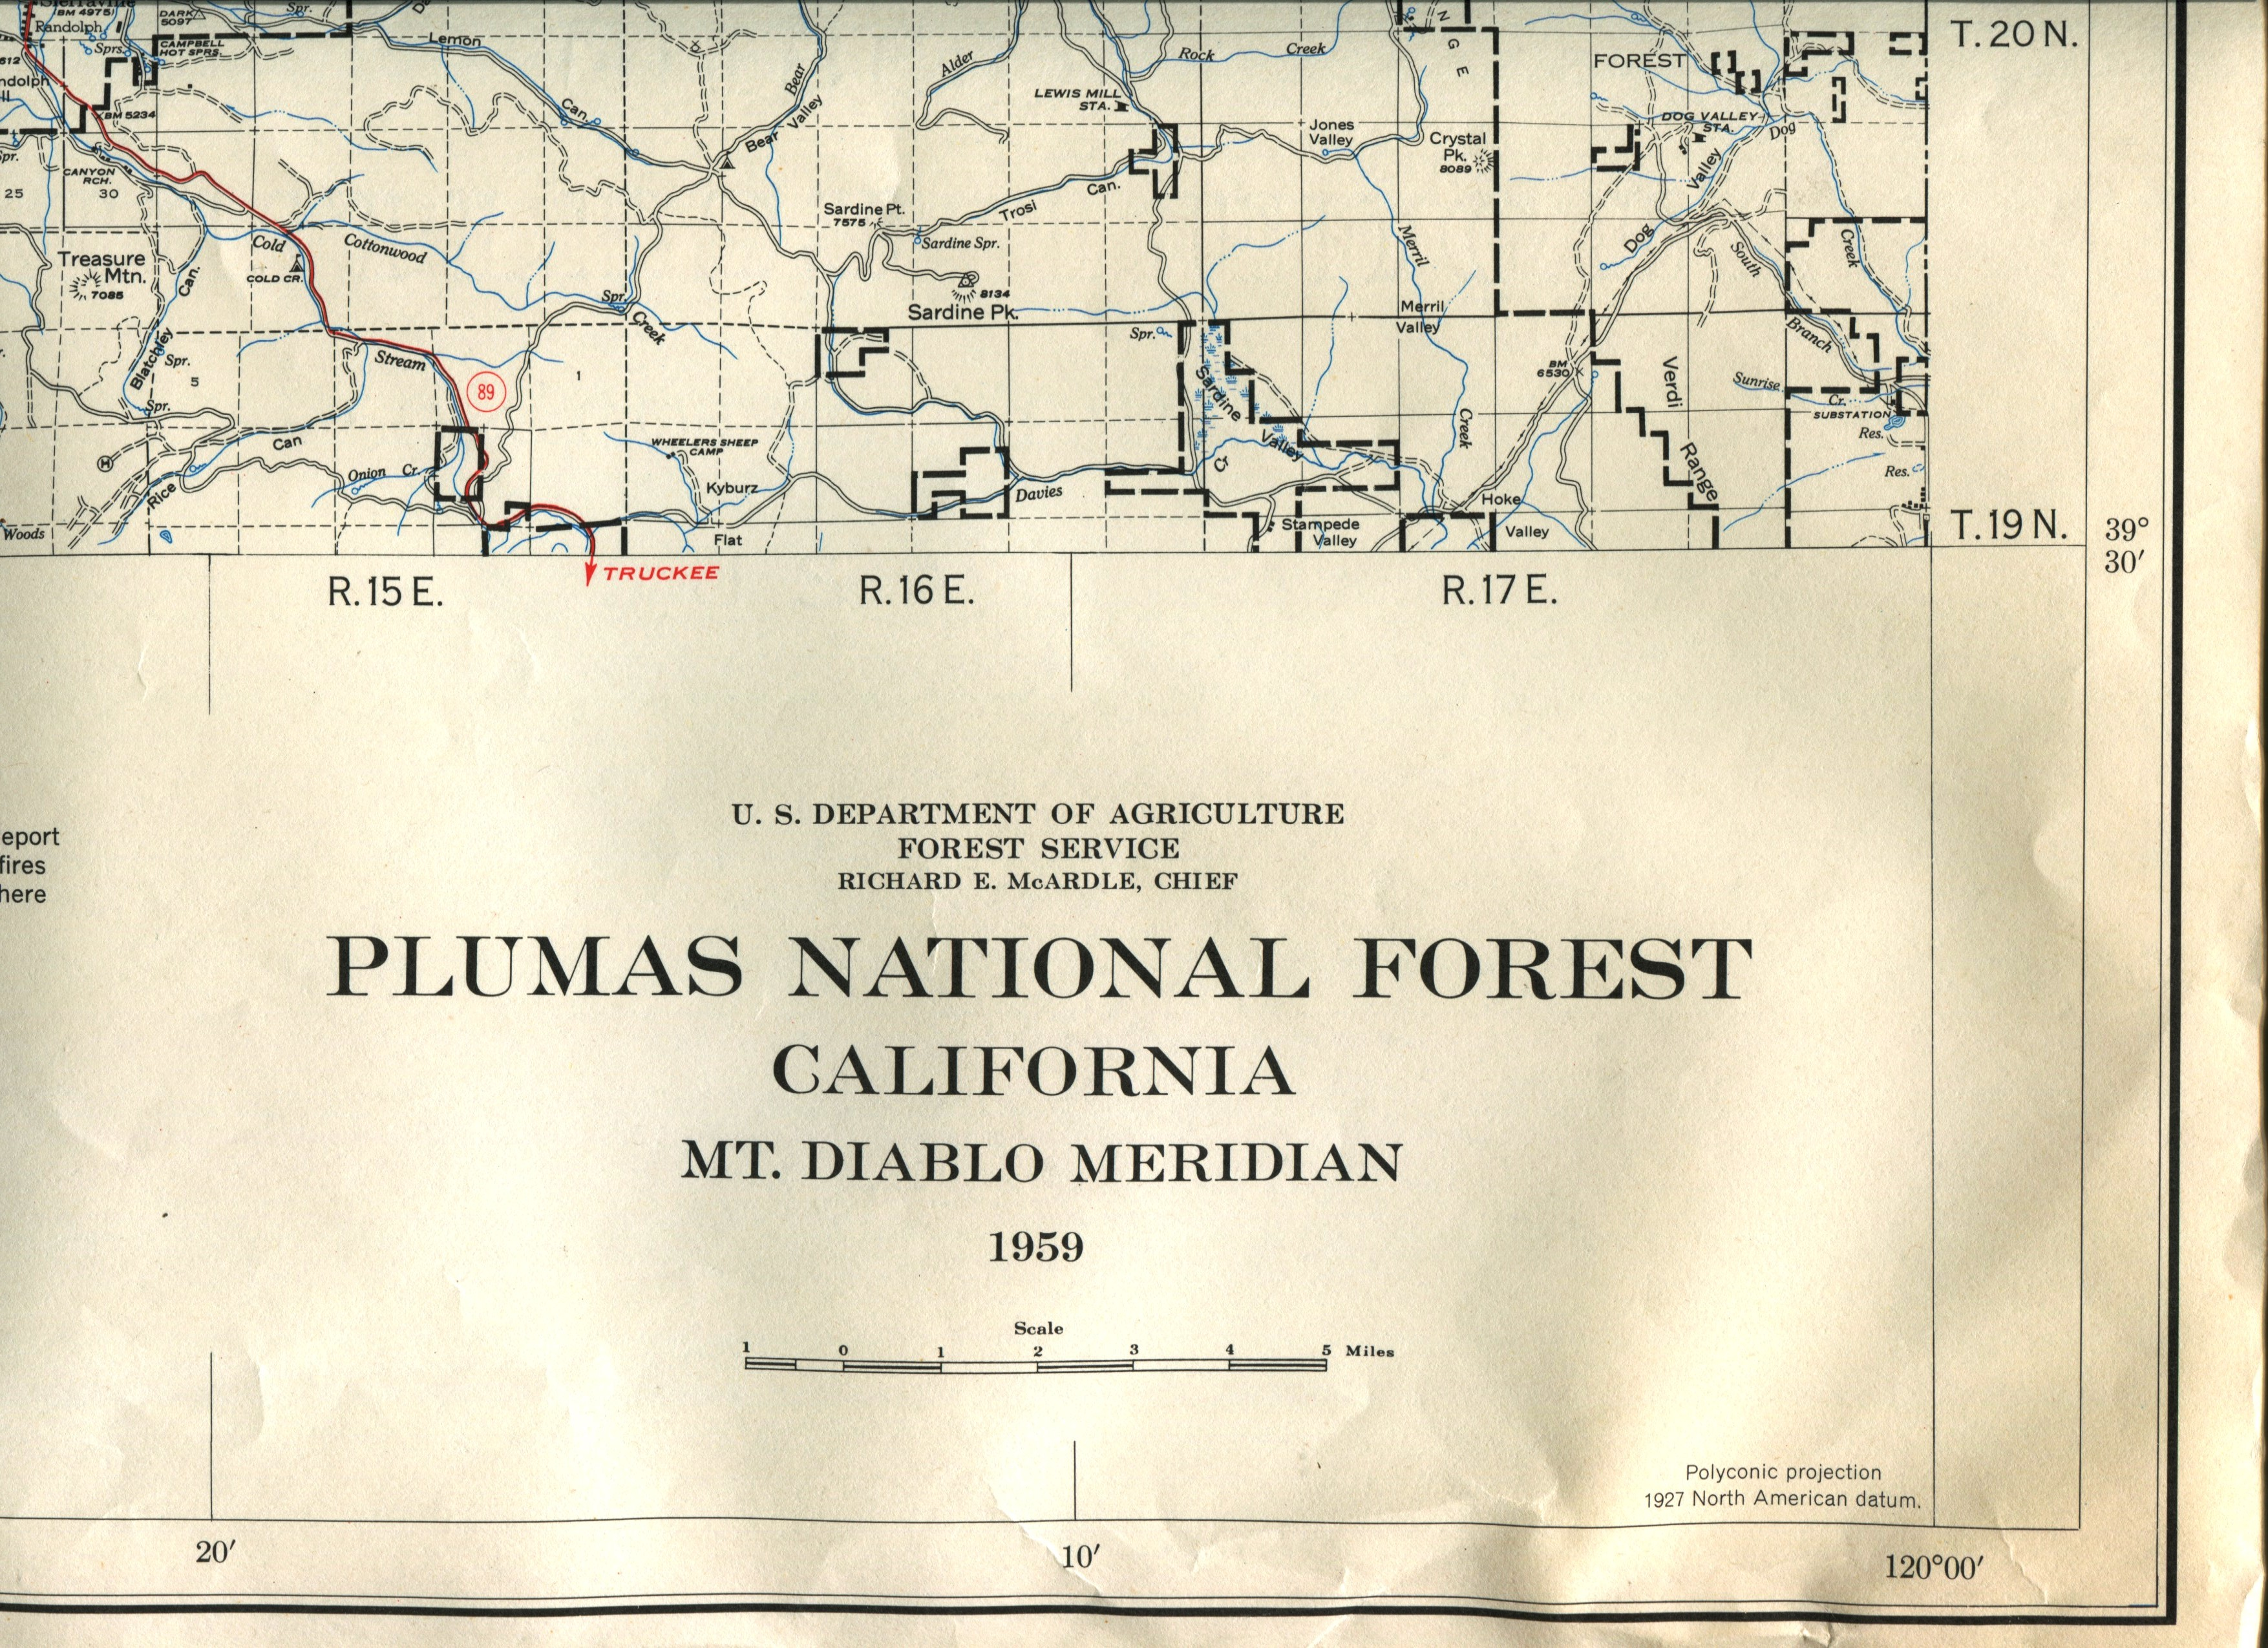 Plumas National Forest Map 1959